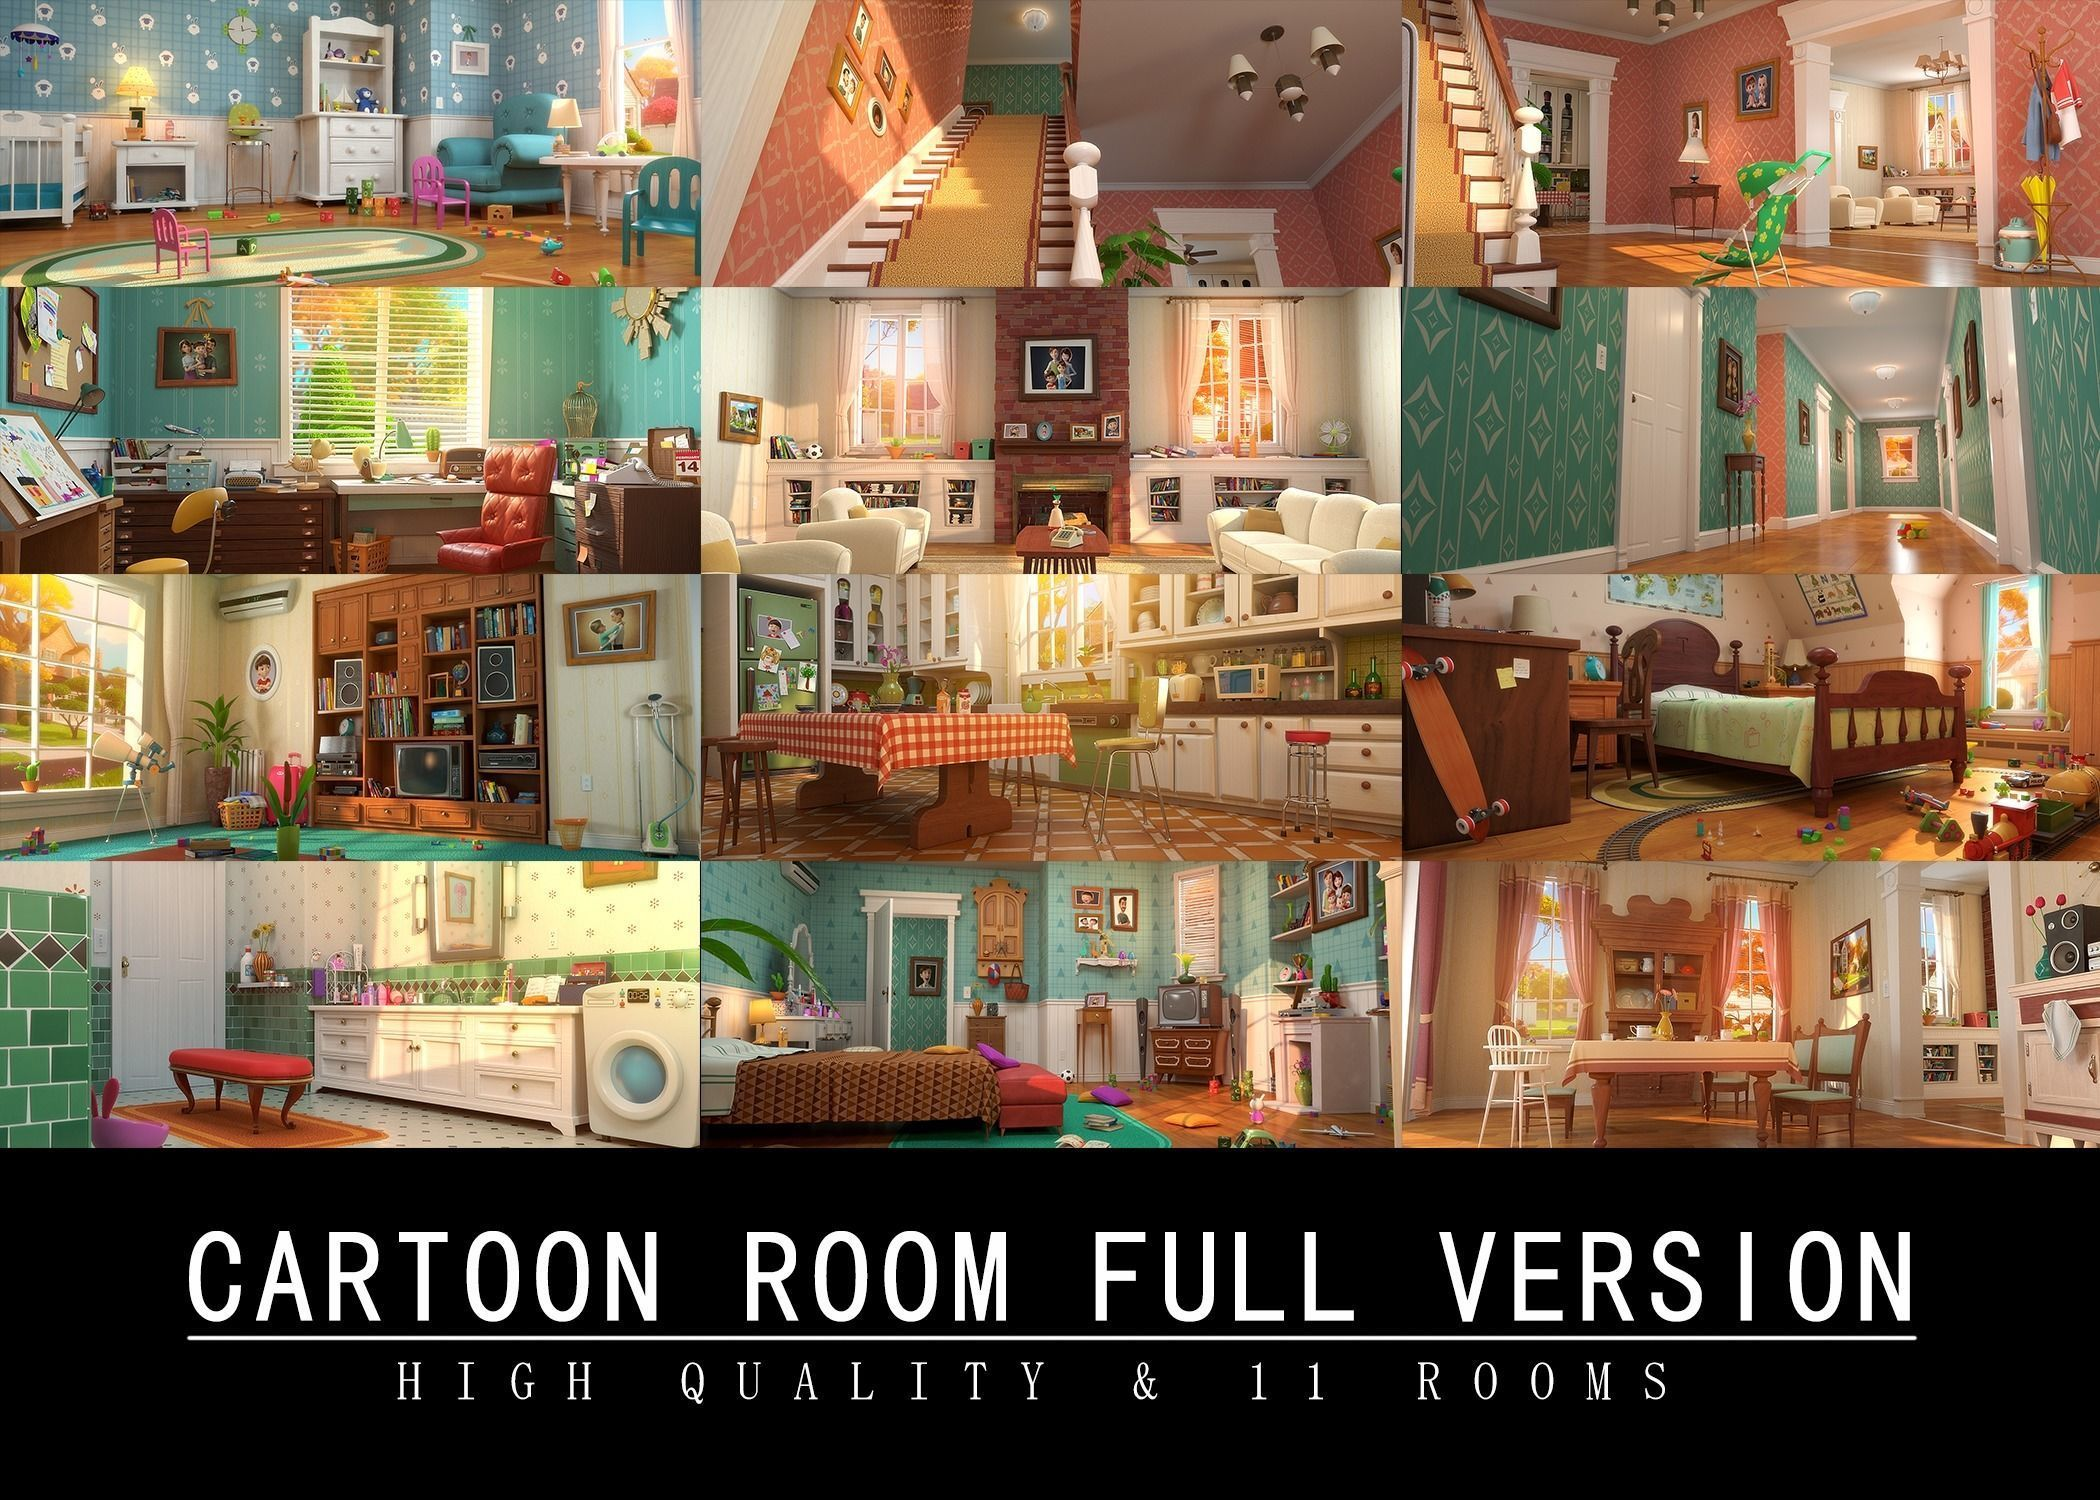 Cartoon Room Interior Full Version